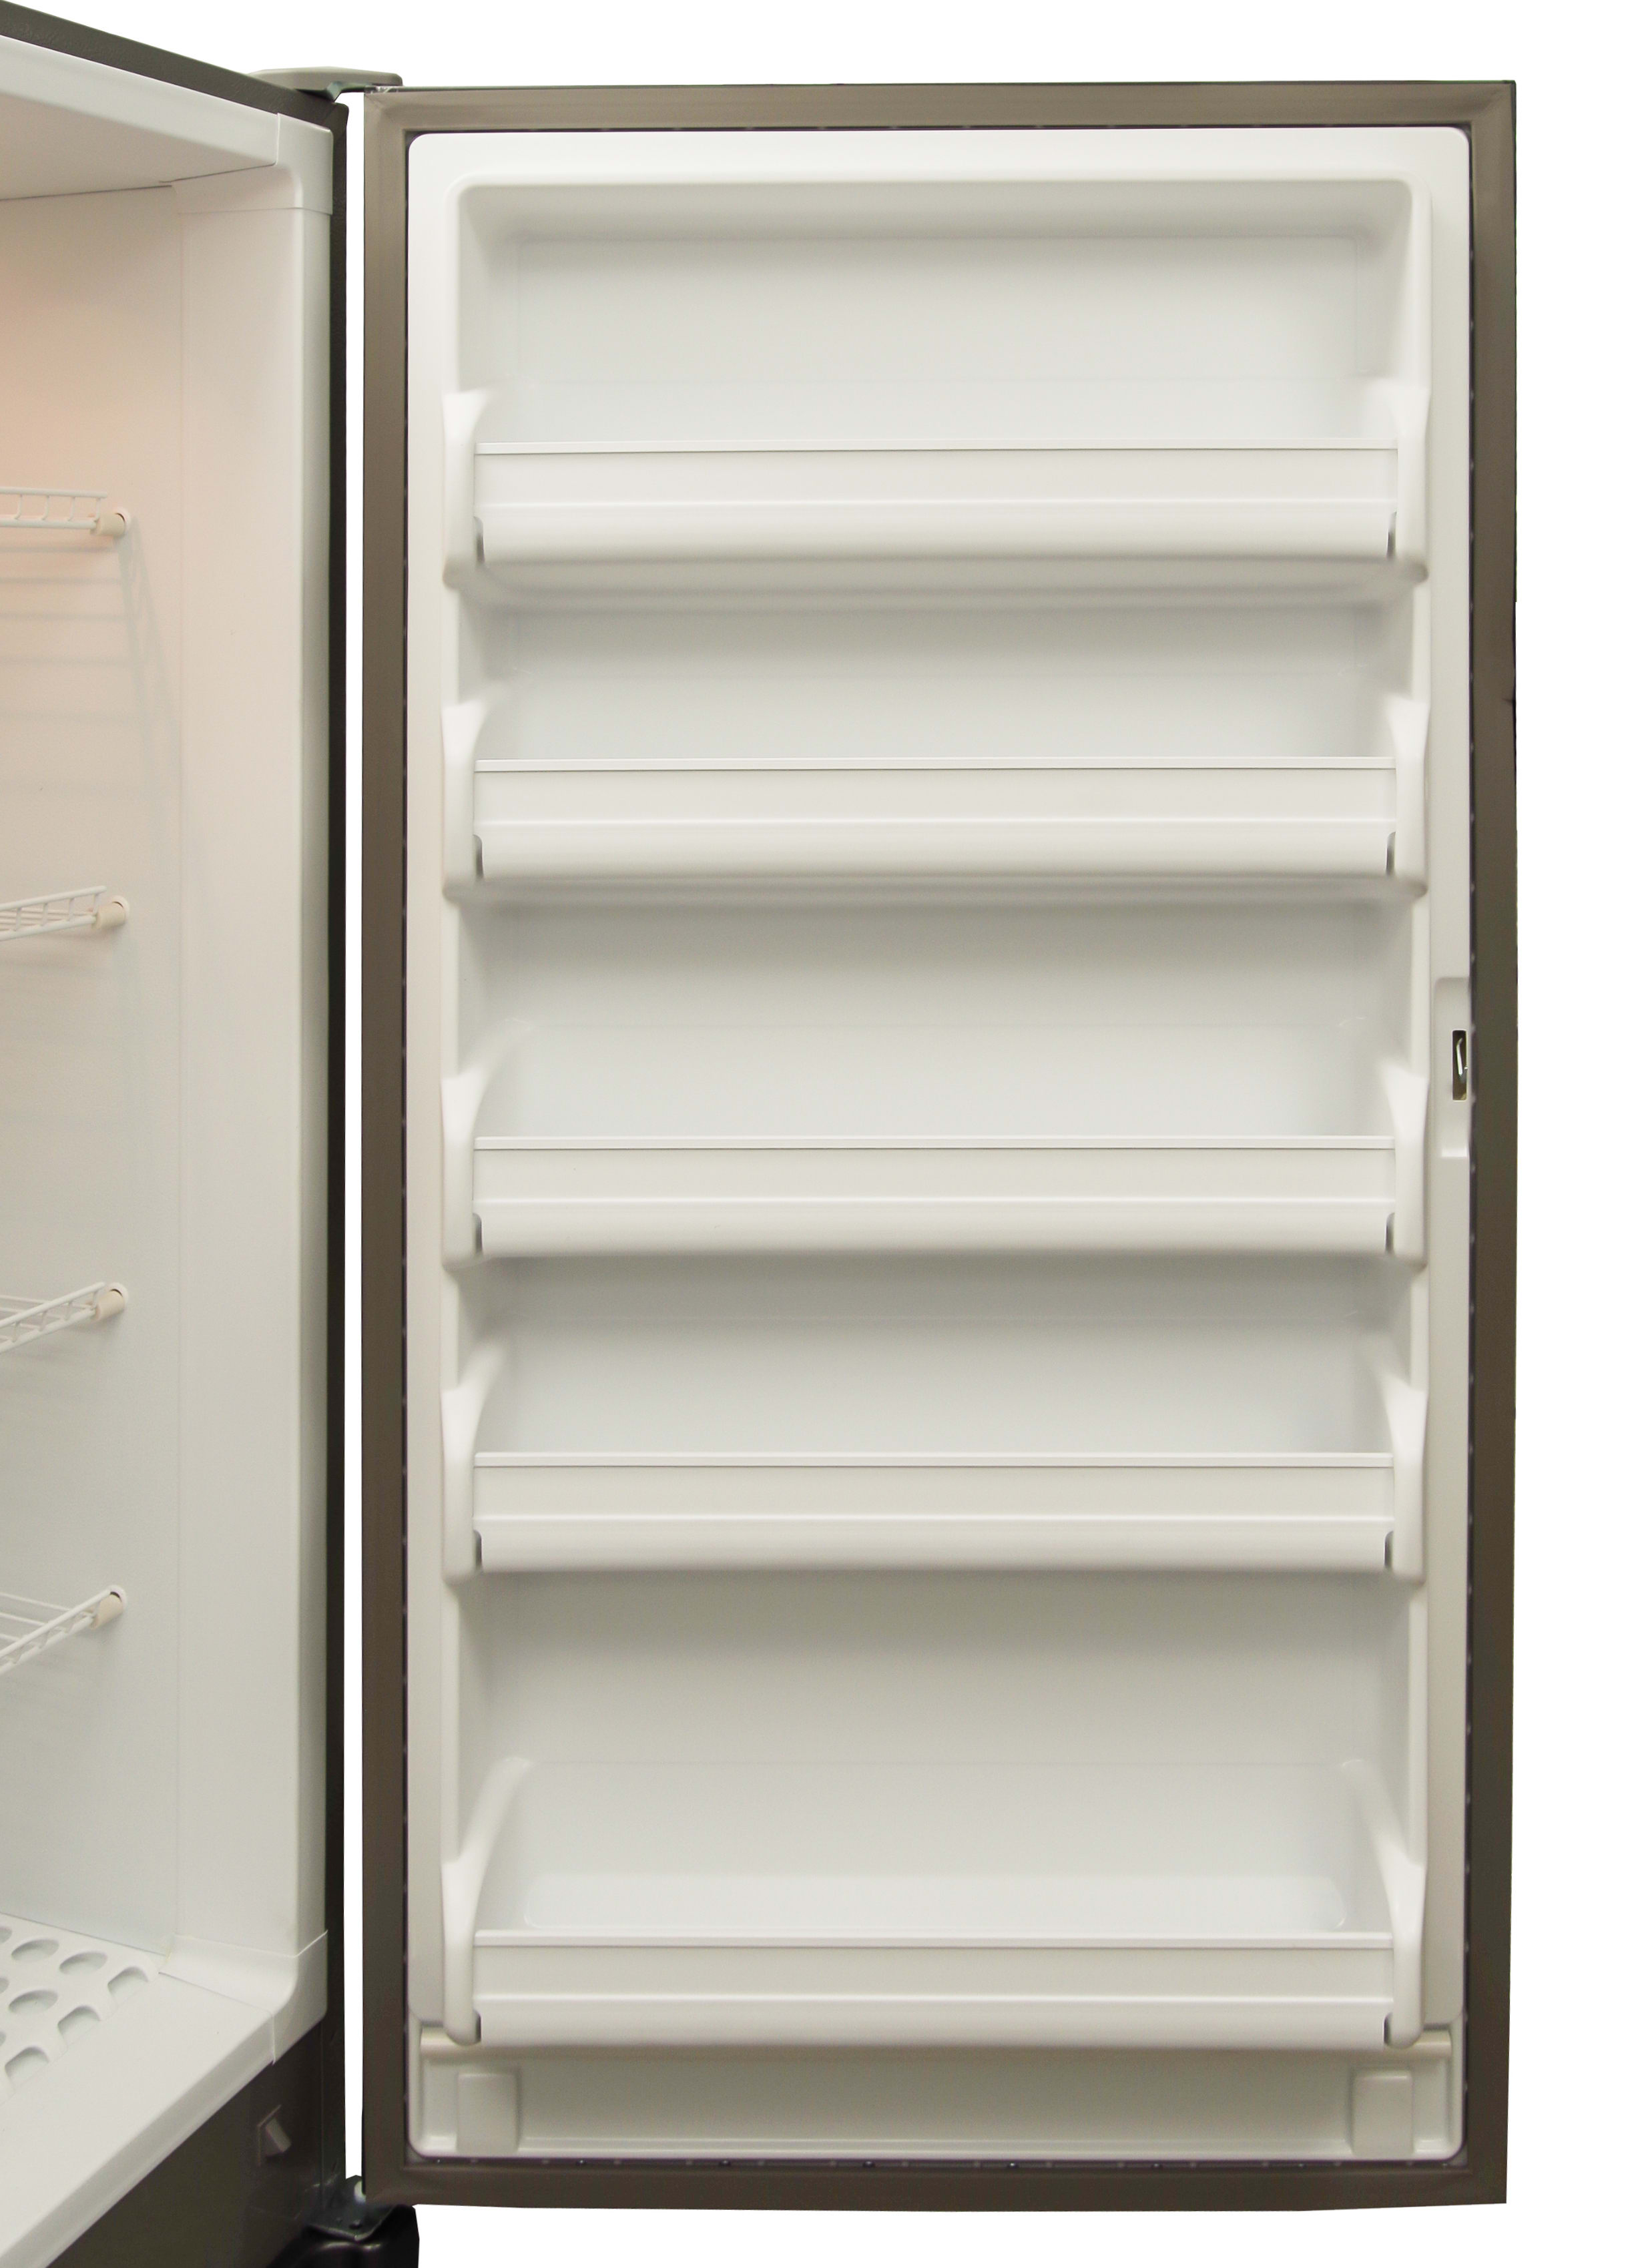 Five door shelves is fairly standard, as is the fact that they're unmovable.